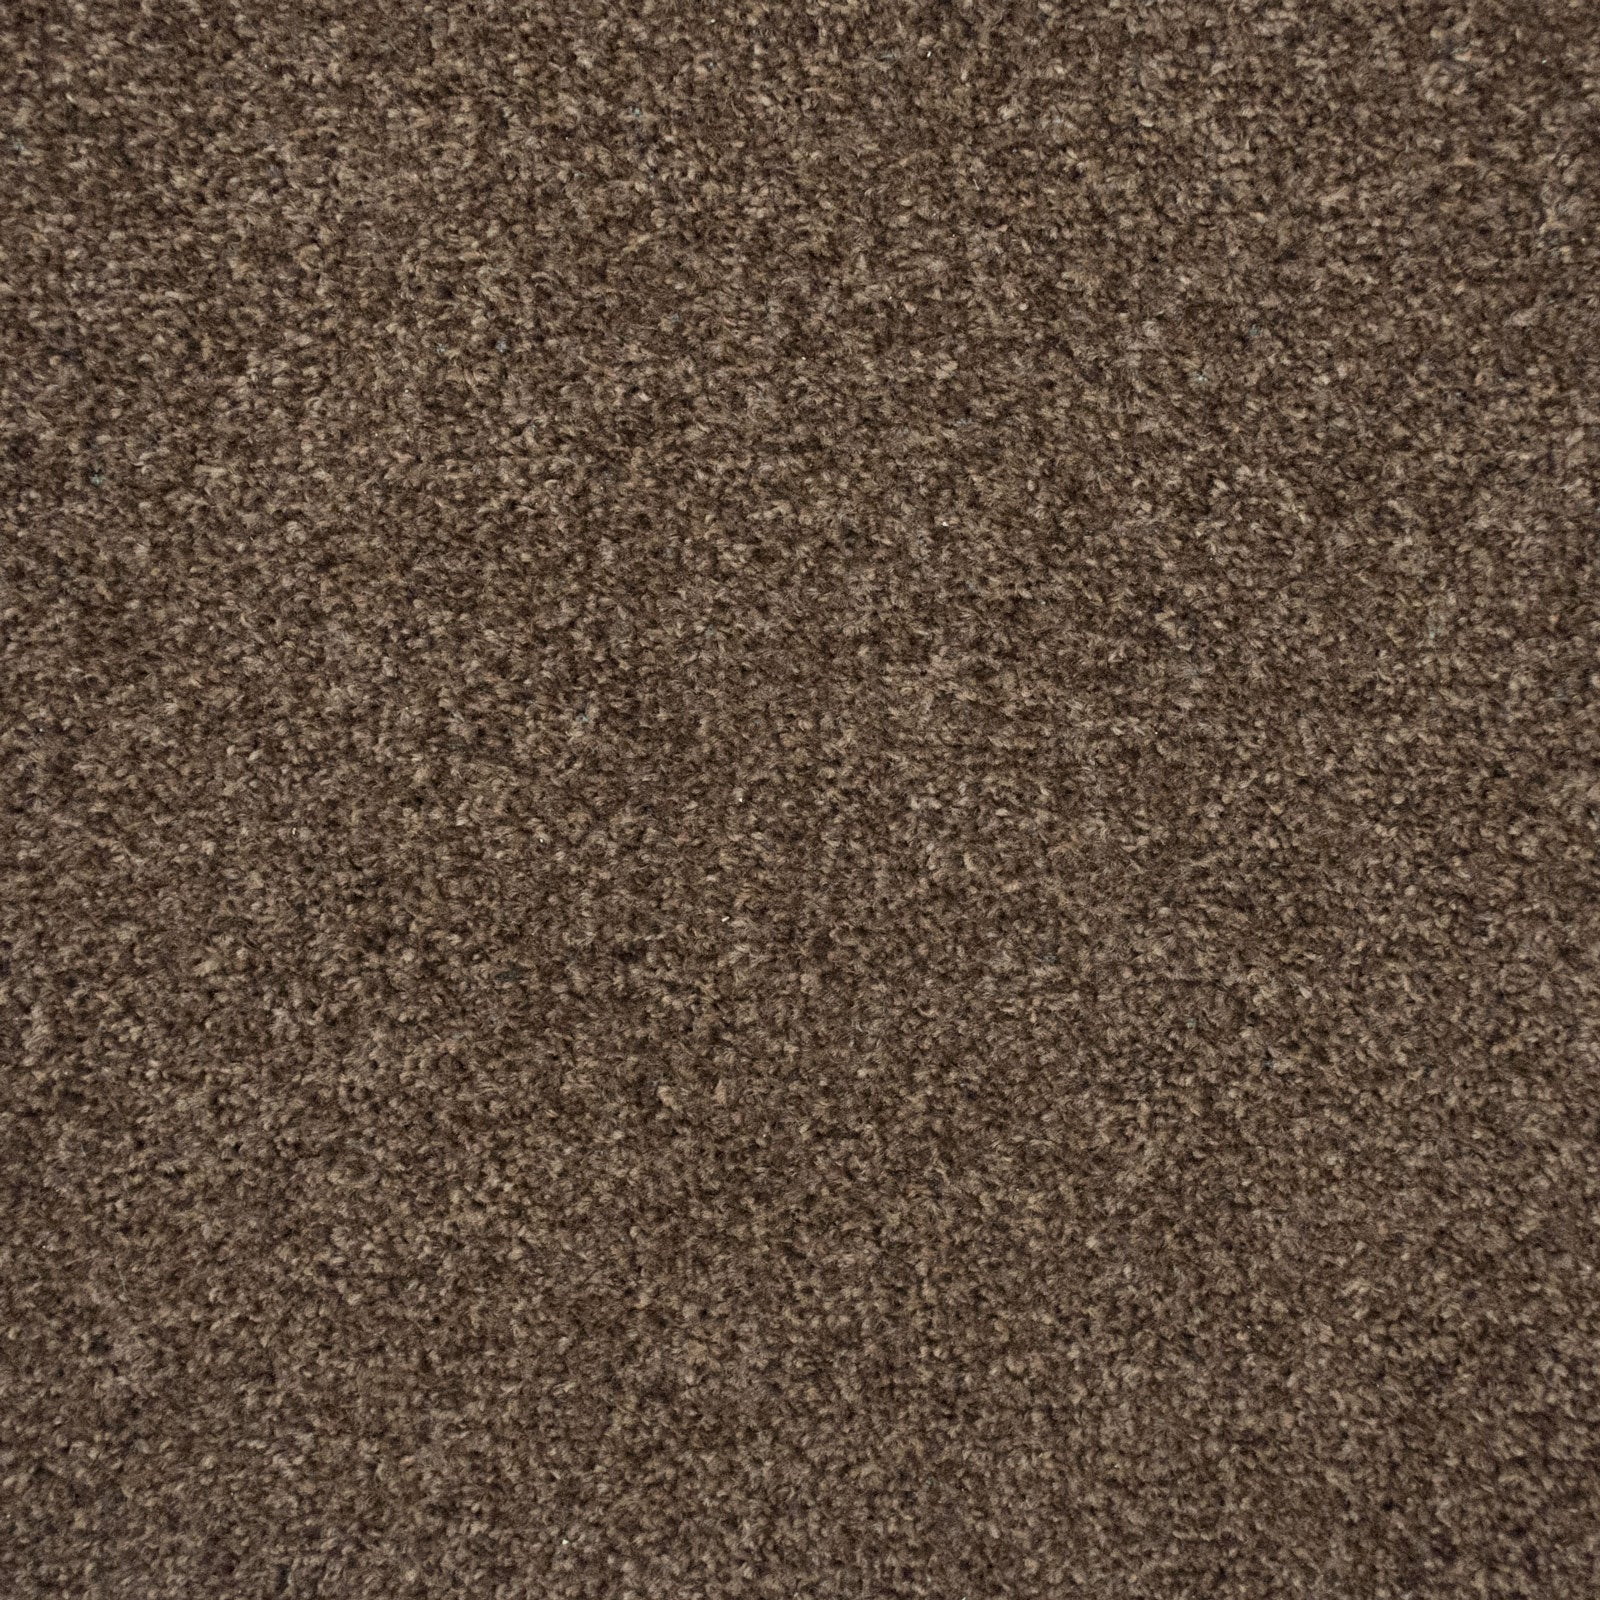 Earth Brown Liberty Heathers Twist Carpet - Far